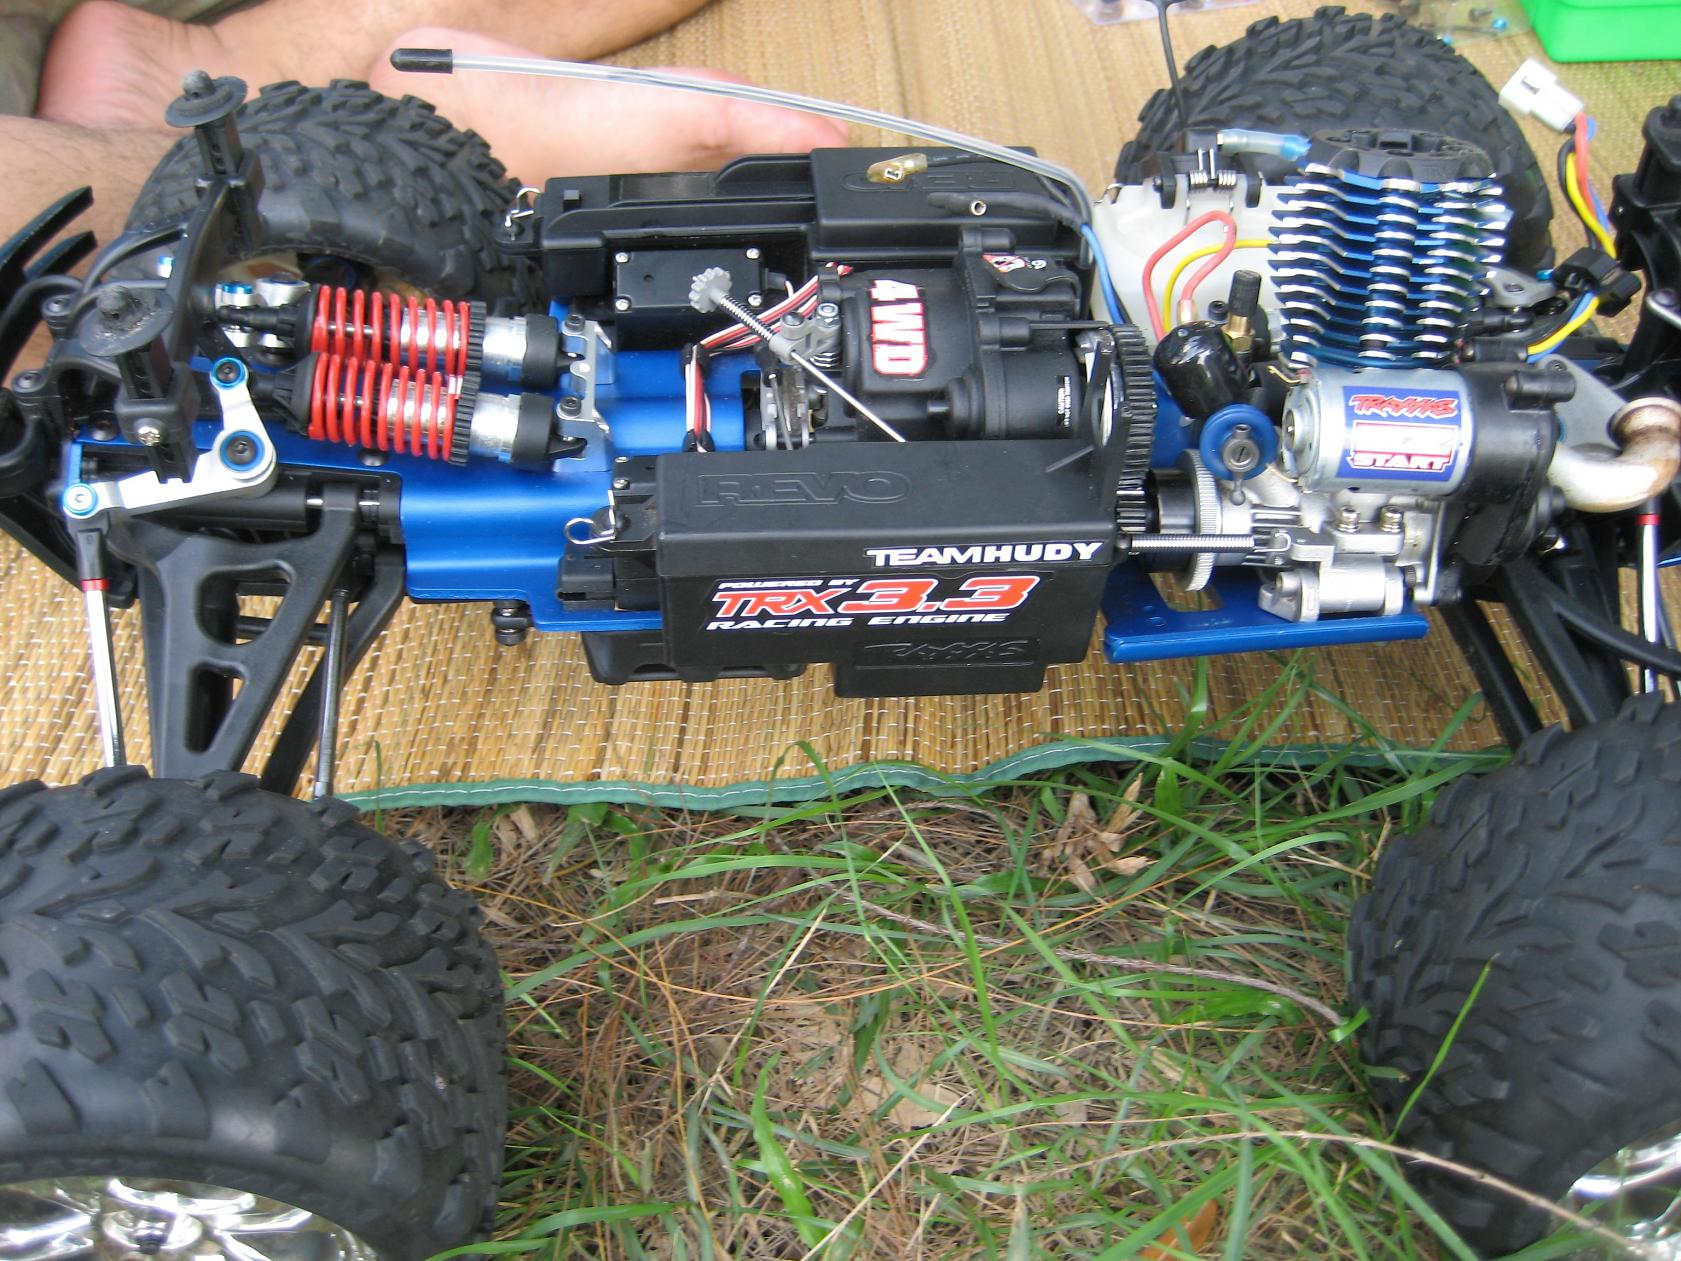 Malaysia Monster Truck thread. - Page 20 - R/C Tech Forums